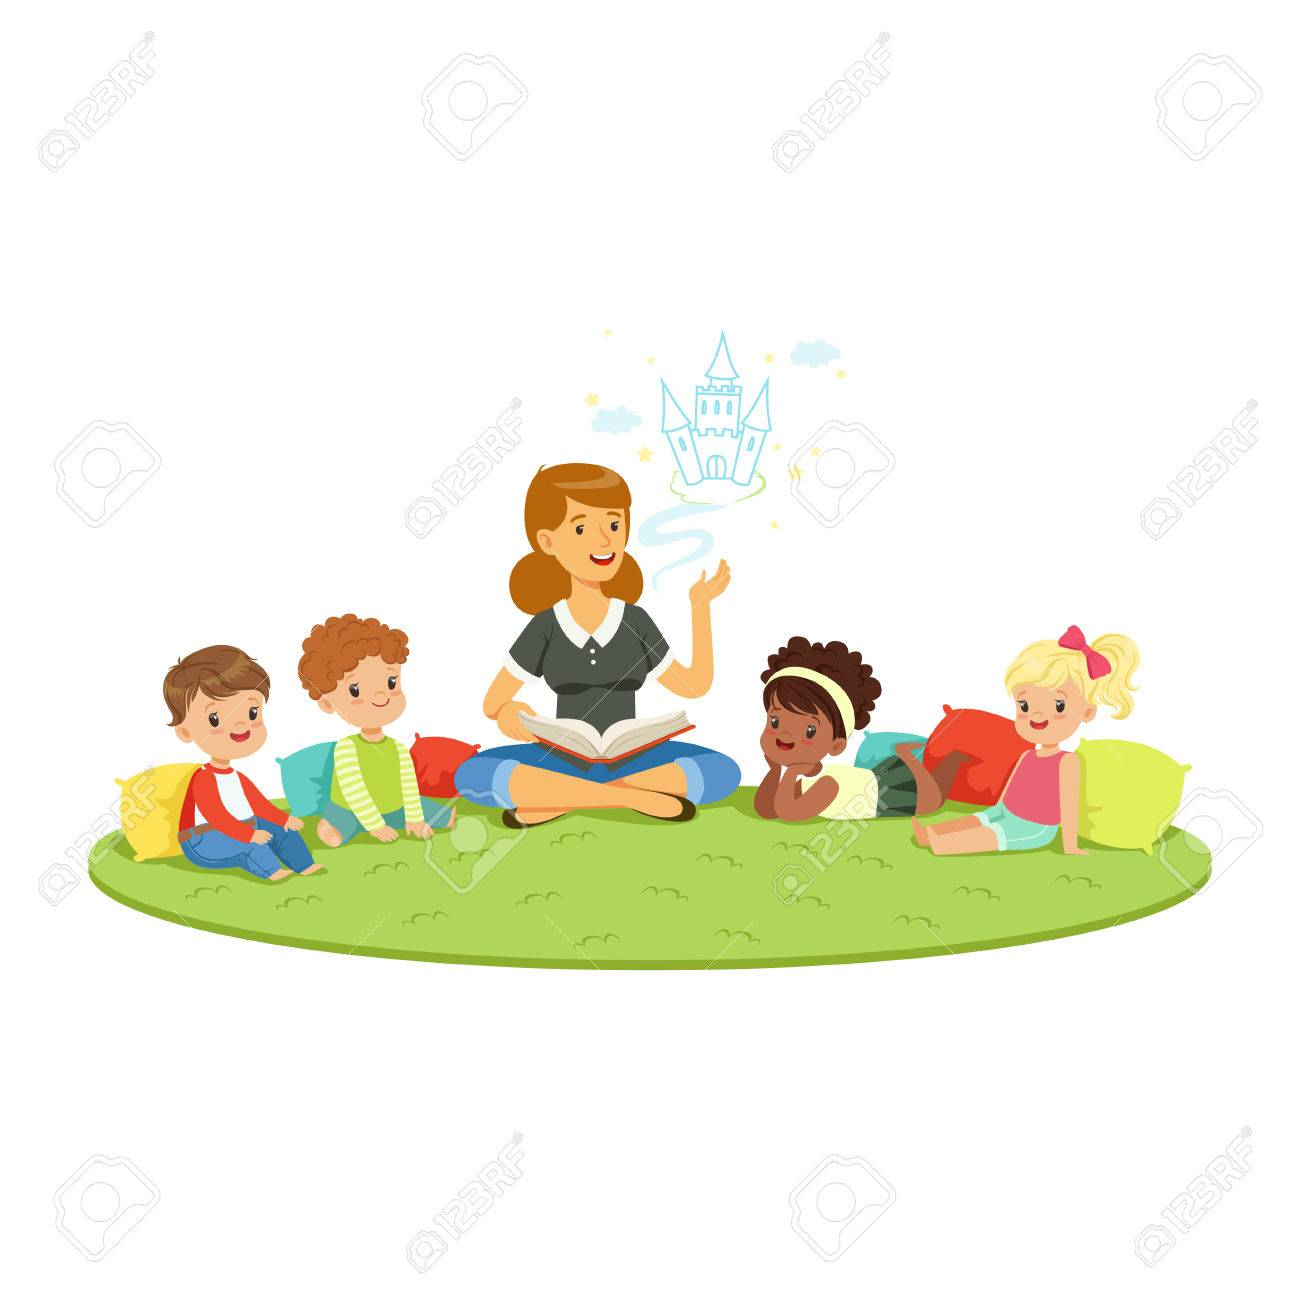 teacher reading a fairytale to kids while sitiing on a carpet